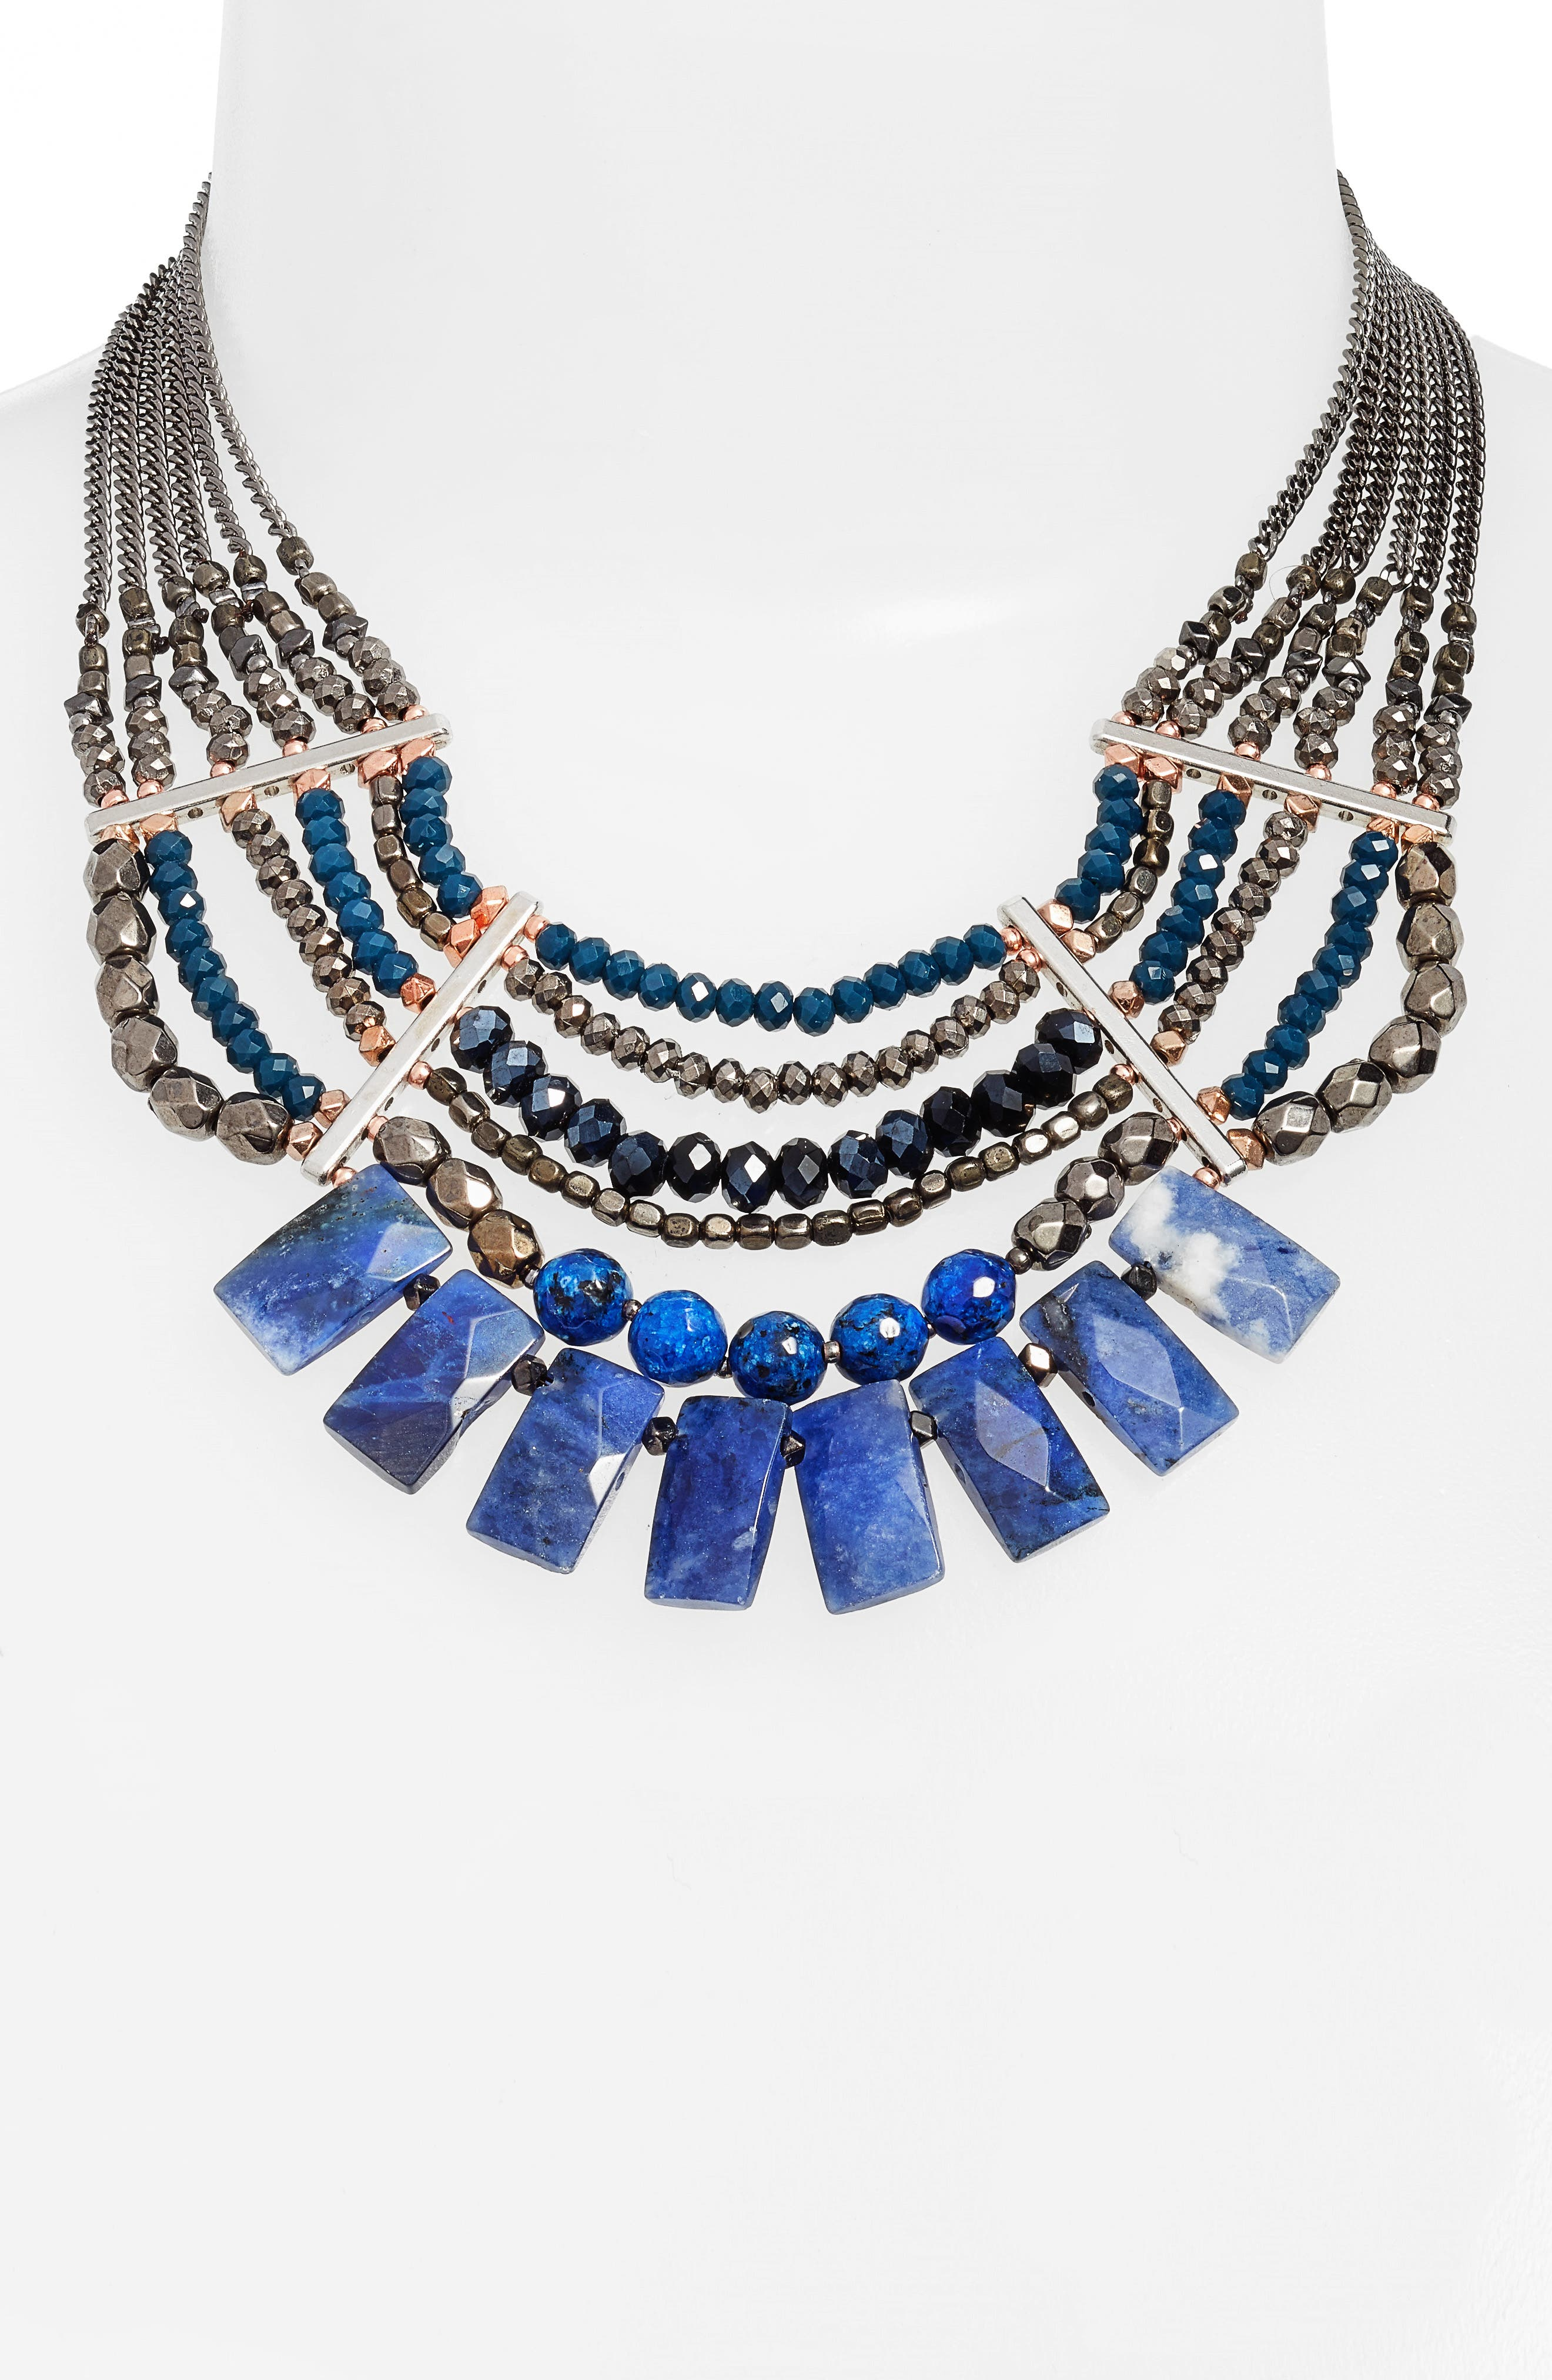 Nakamol Design Semiprecious Stone Beaded Fringe Collar Necklace